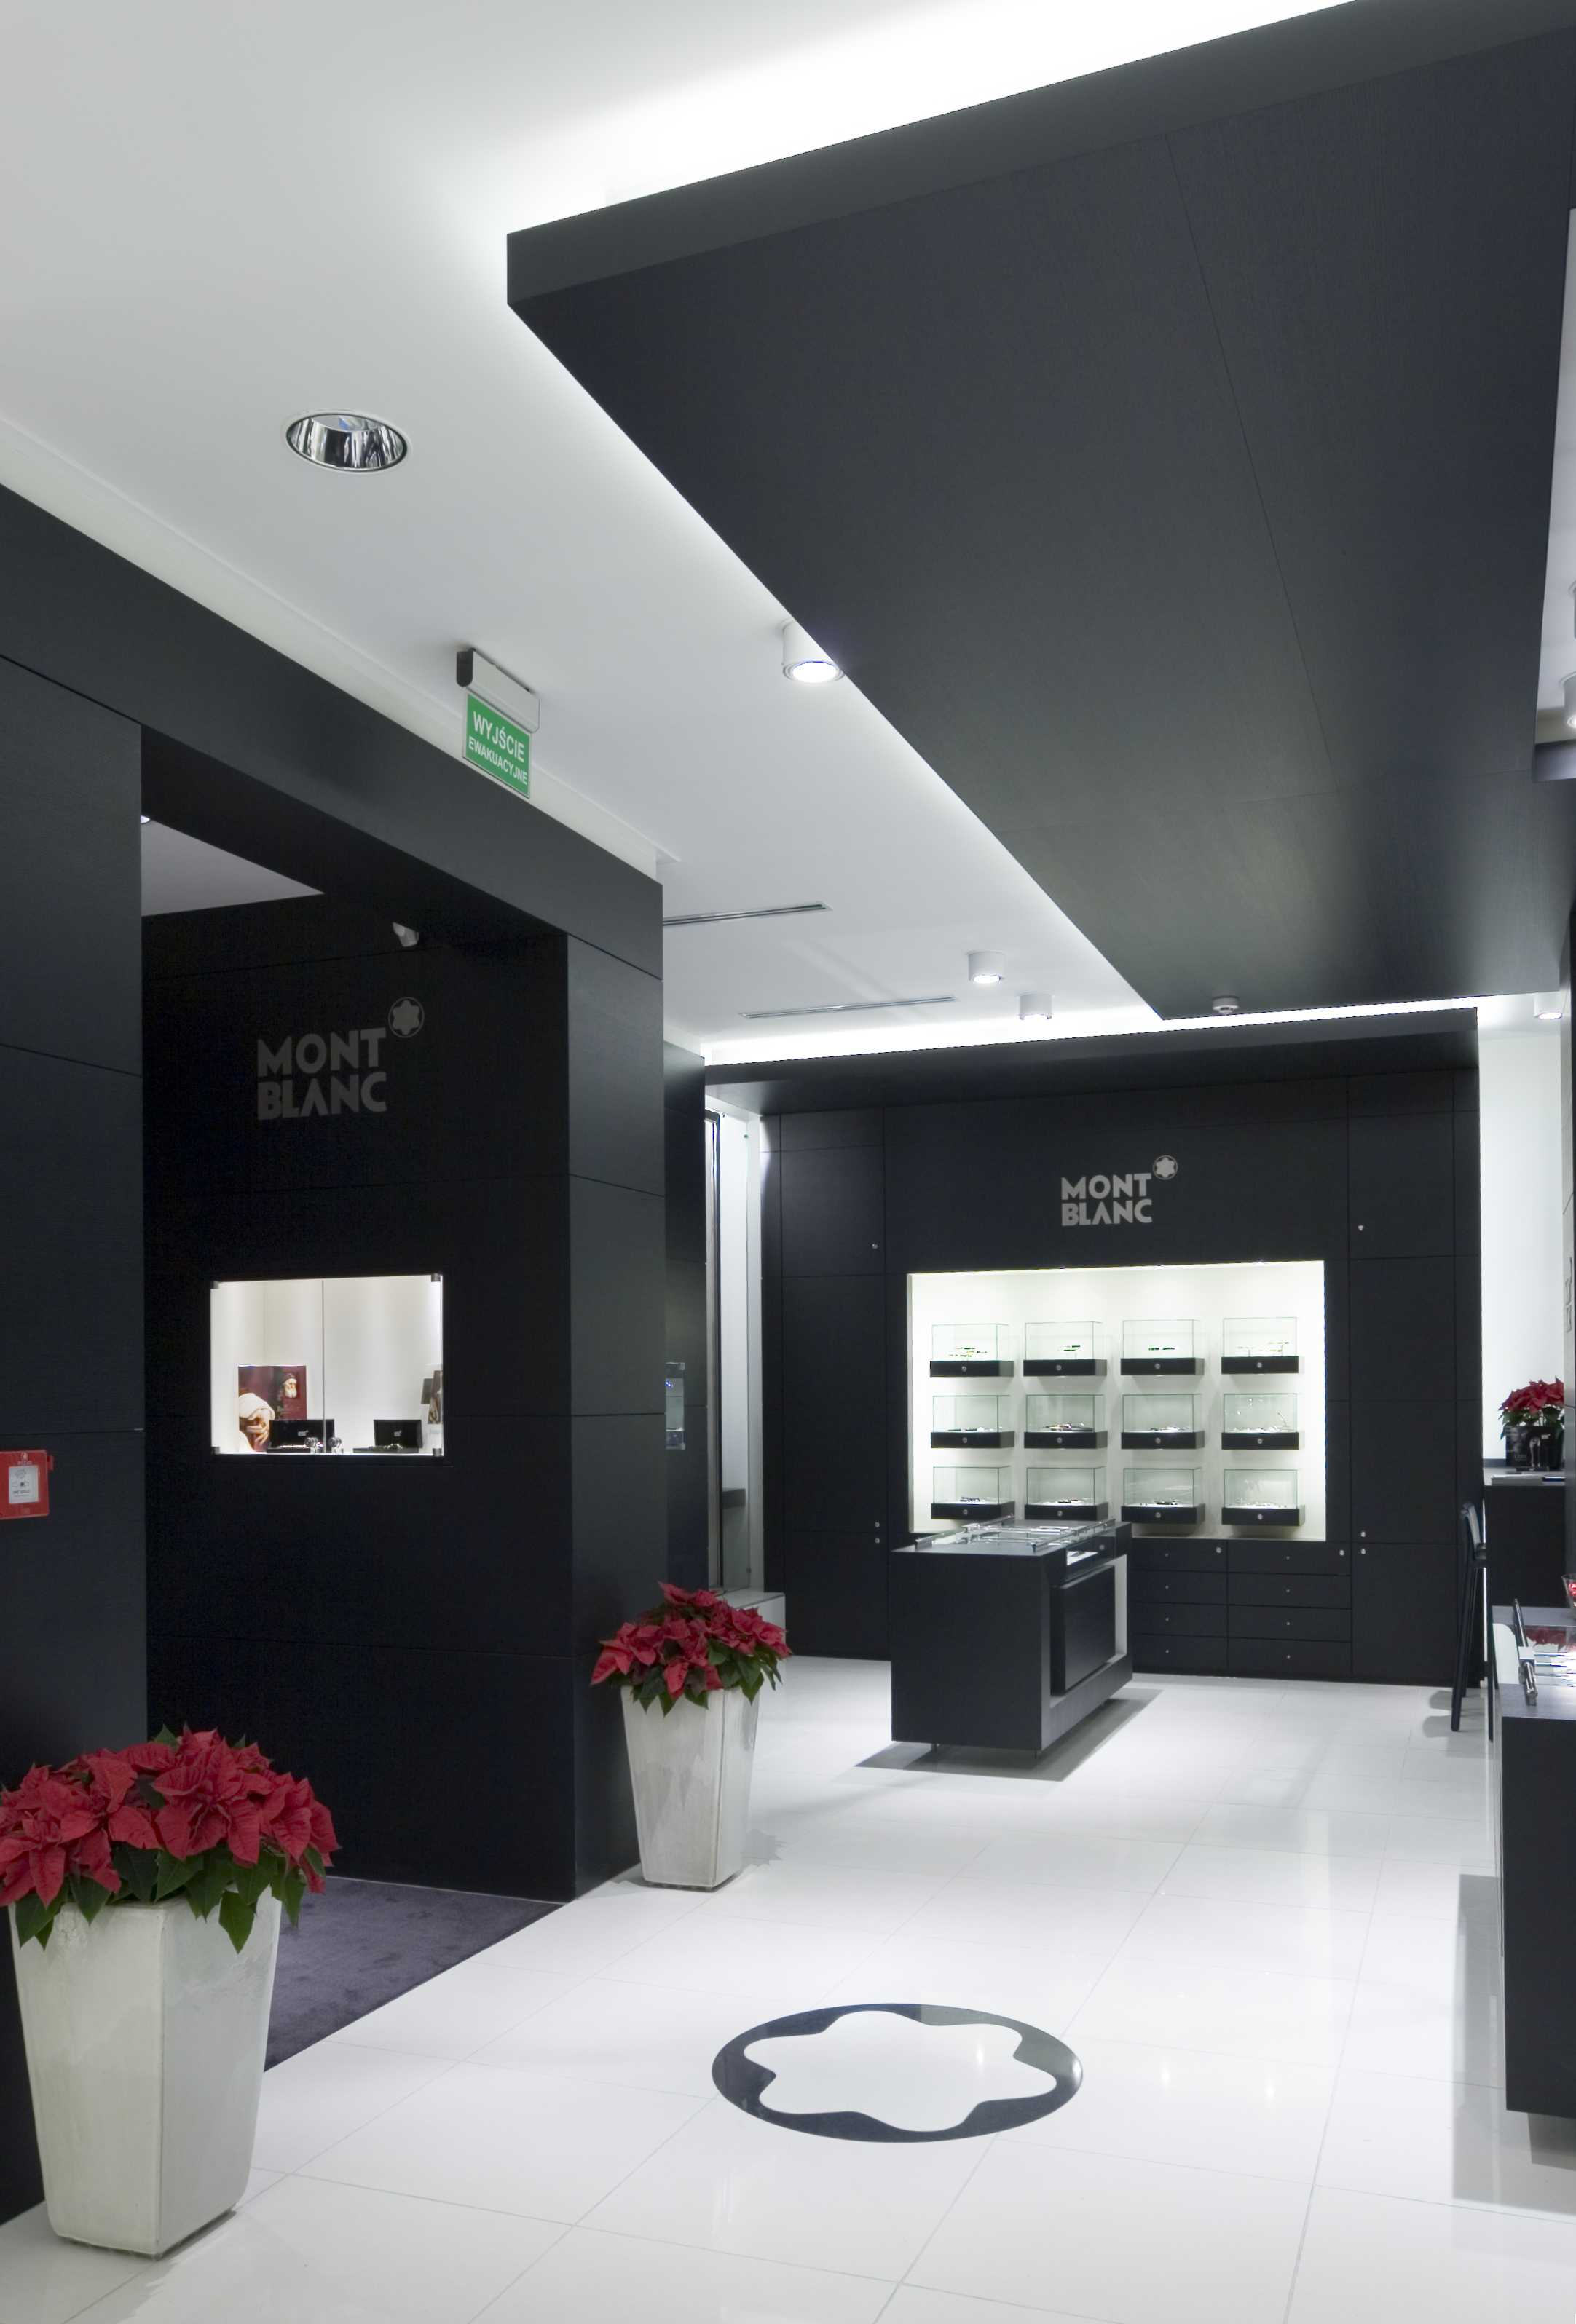 MONT BLANC - partner Optique